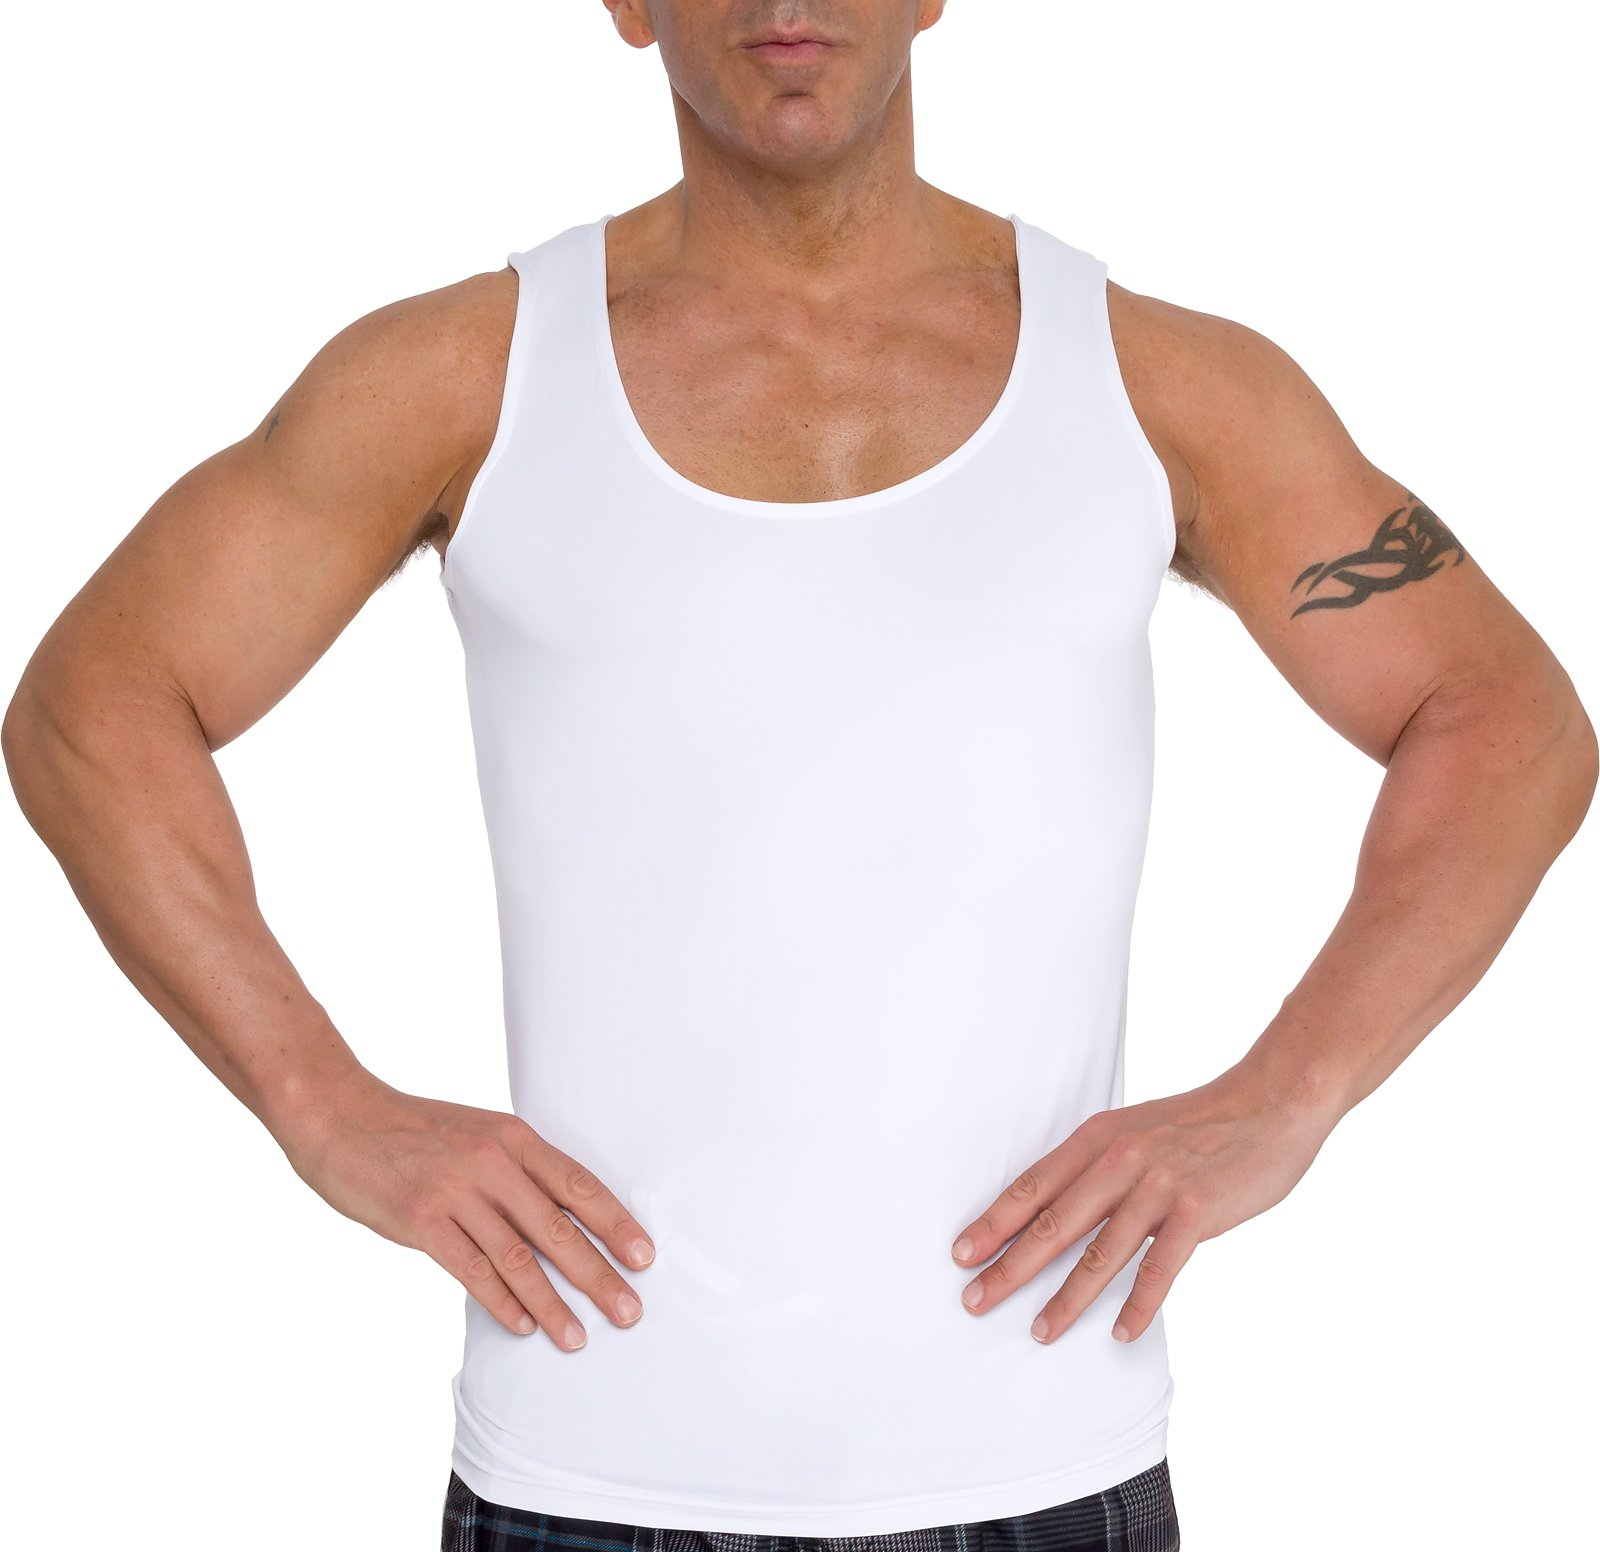 LISH Men's Slimming Light Compression Tank Top Shirt - Sleeveless Body Shaper Shirt for Gynecomastia, Weight Loss by (White, Large)